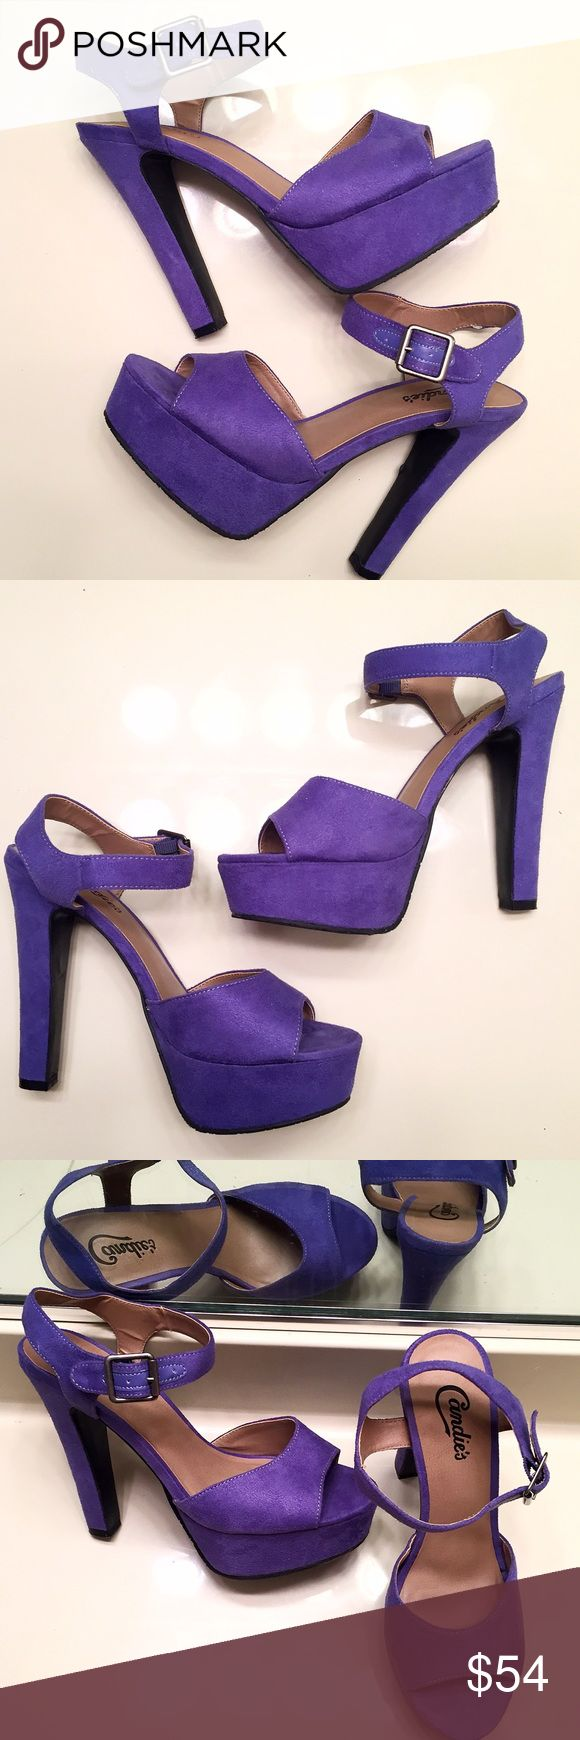 [Candie's] light purple ankle strap pumps size 8.5 These were worn once but are essentially brand new. Light purple ankle strap pumps by Candie's. Women's size 8 1/2 Candie's Shoes Heels